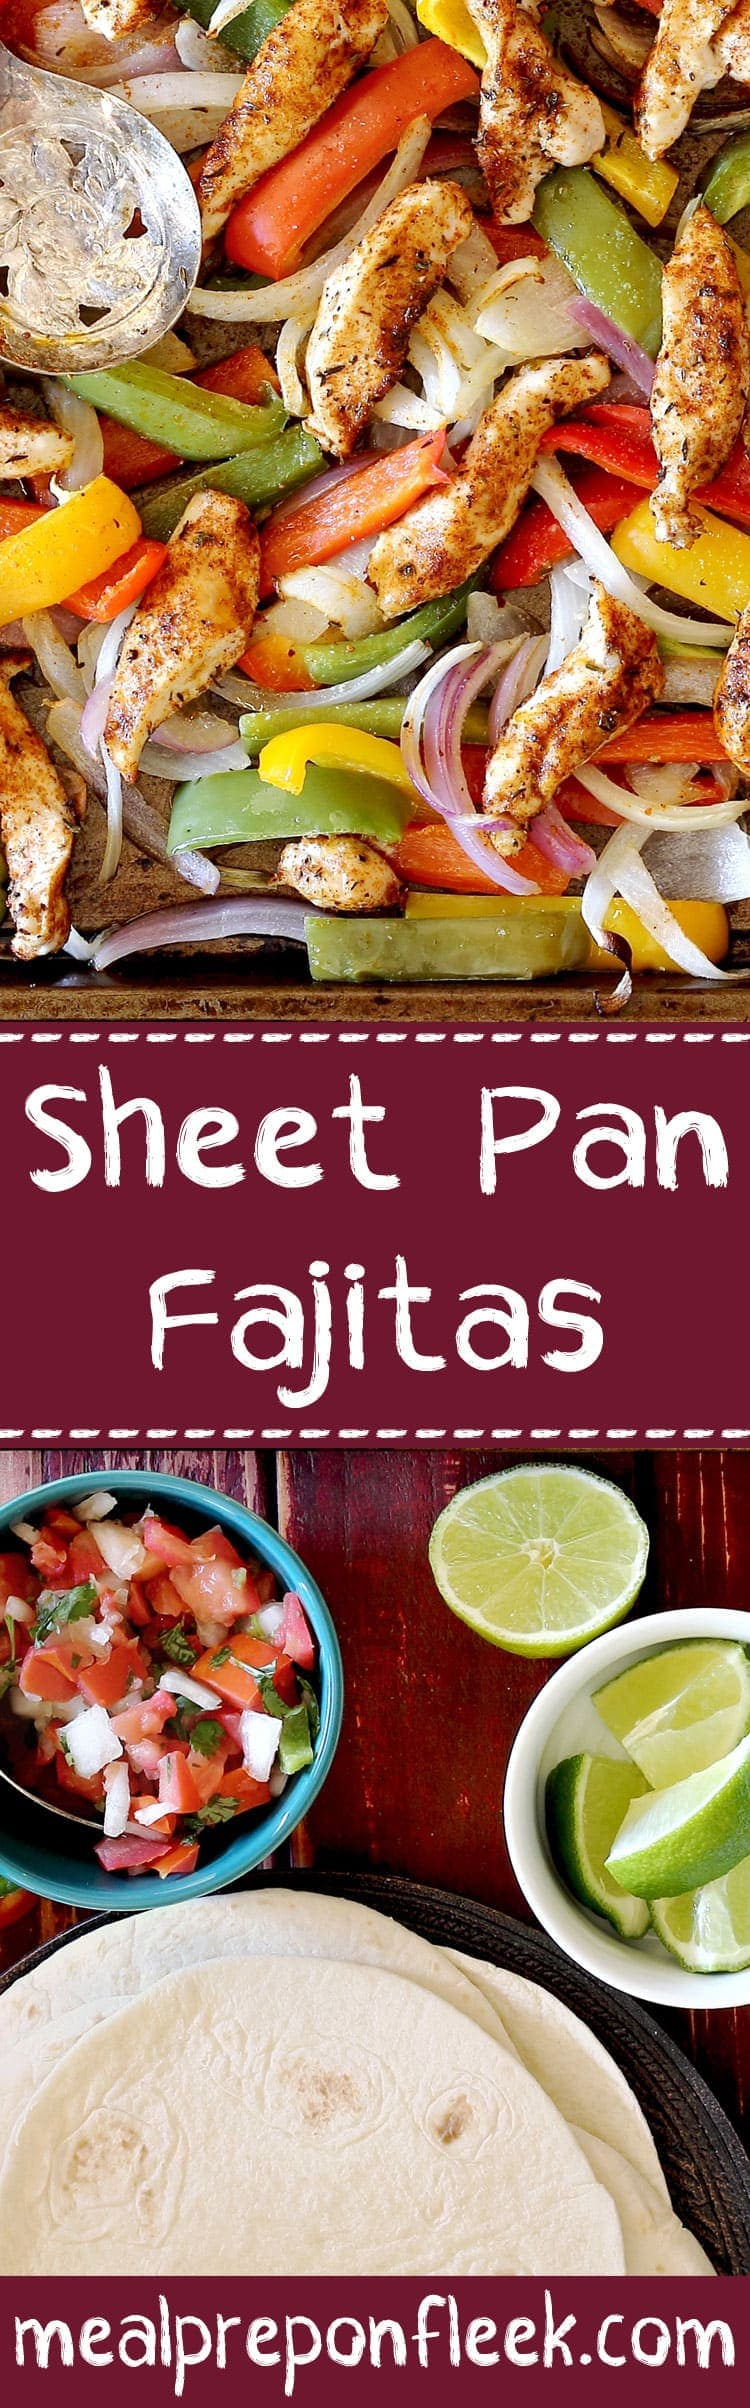 One Pan Steak Fajitas Meal Prep